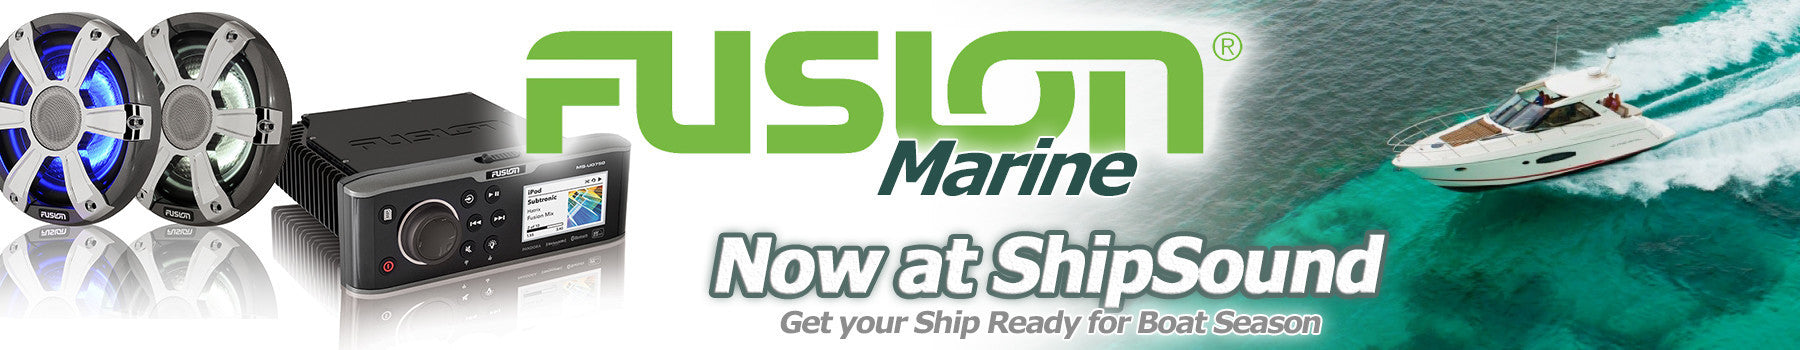 Click here to view Fusion Marine on ShipSound